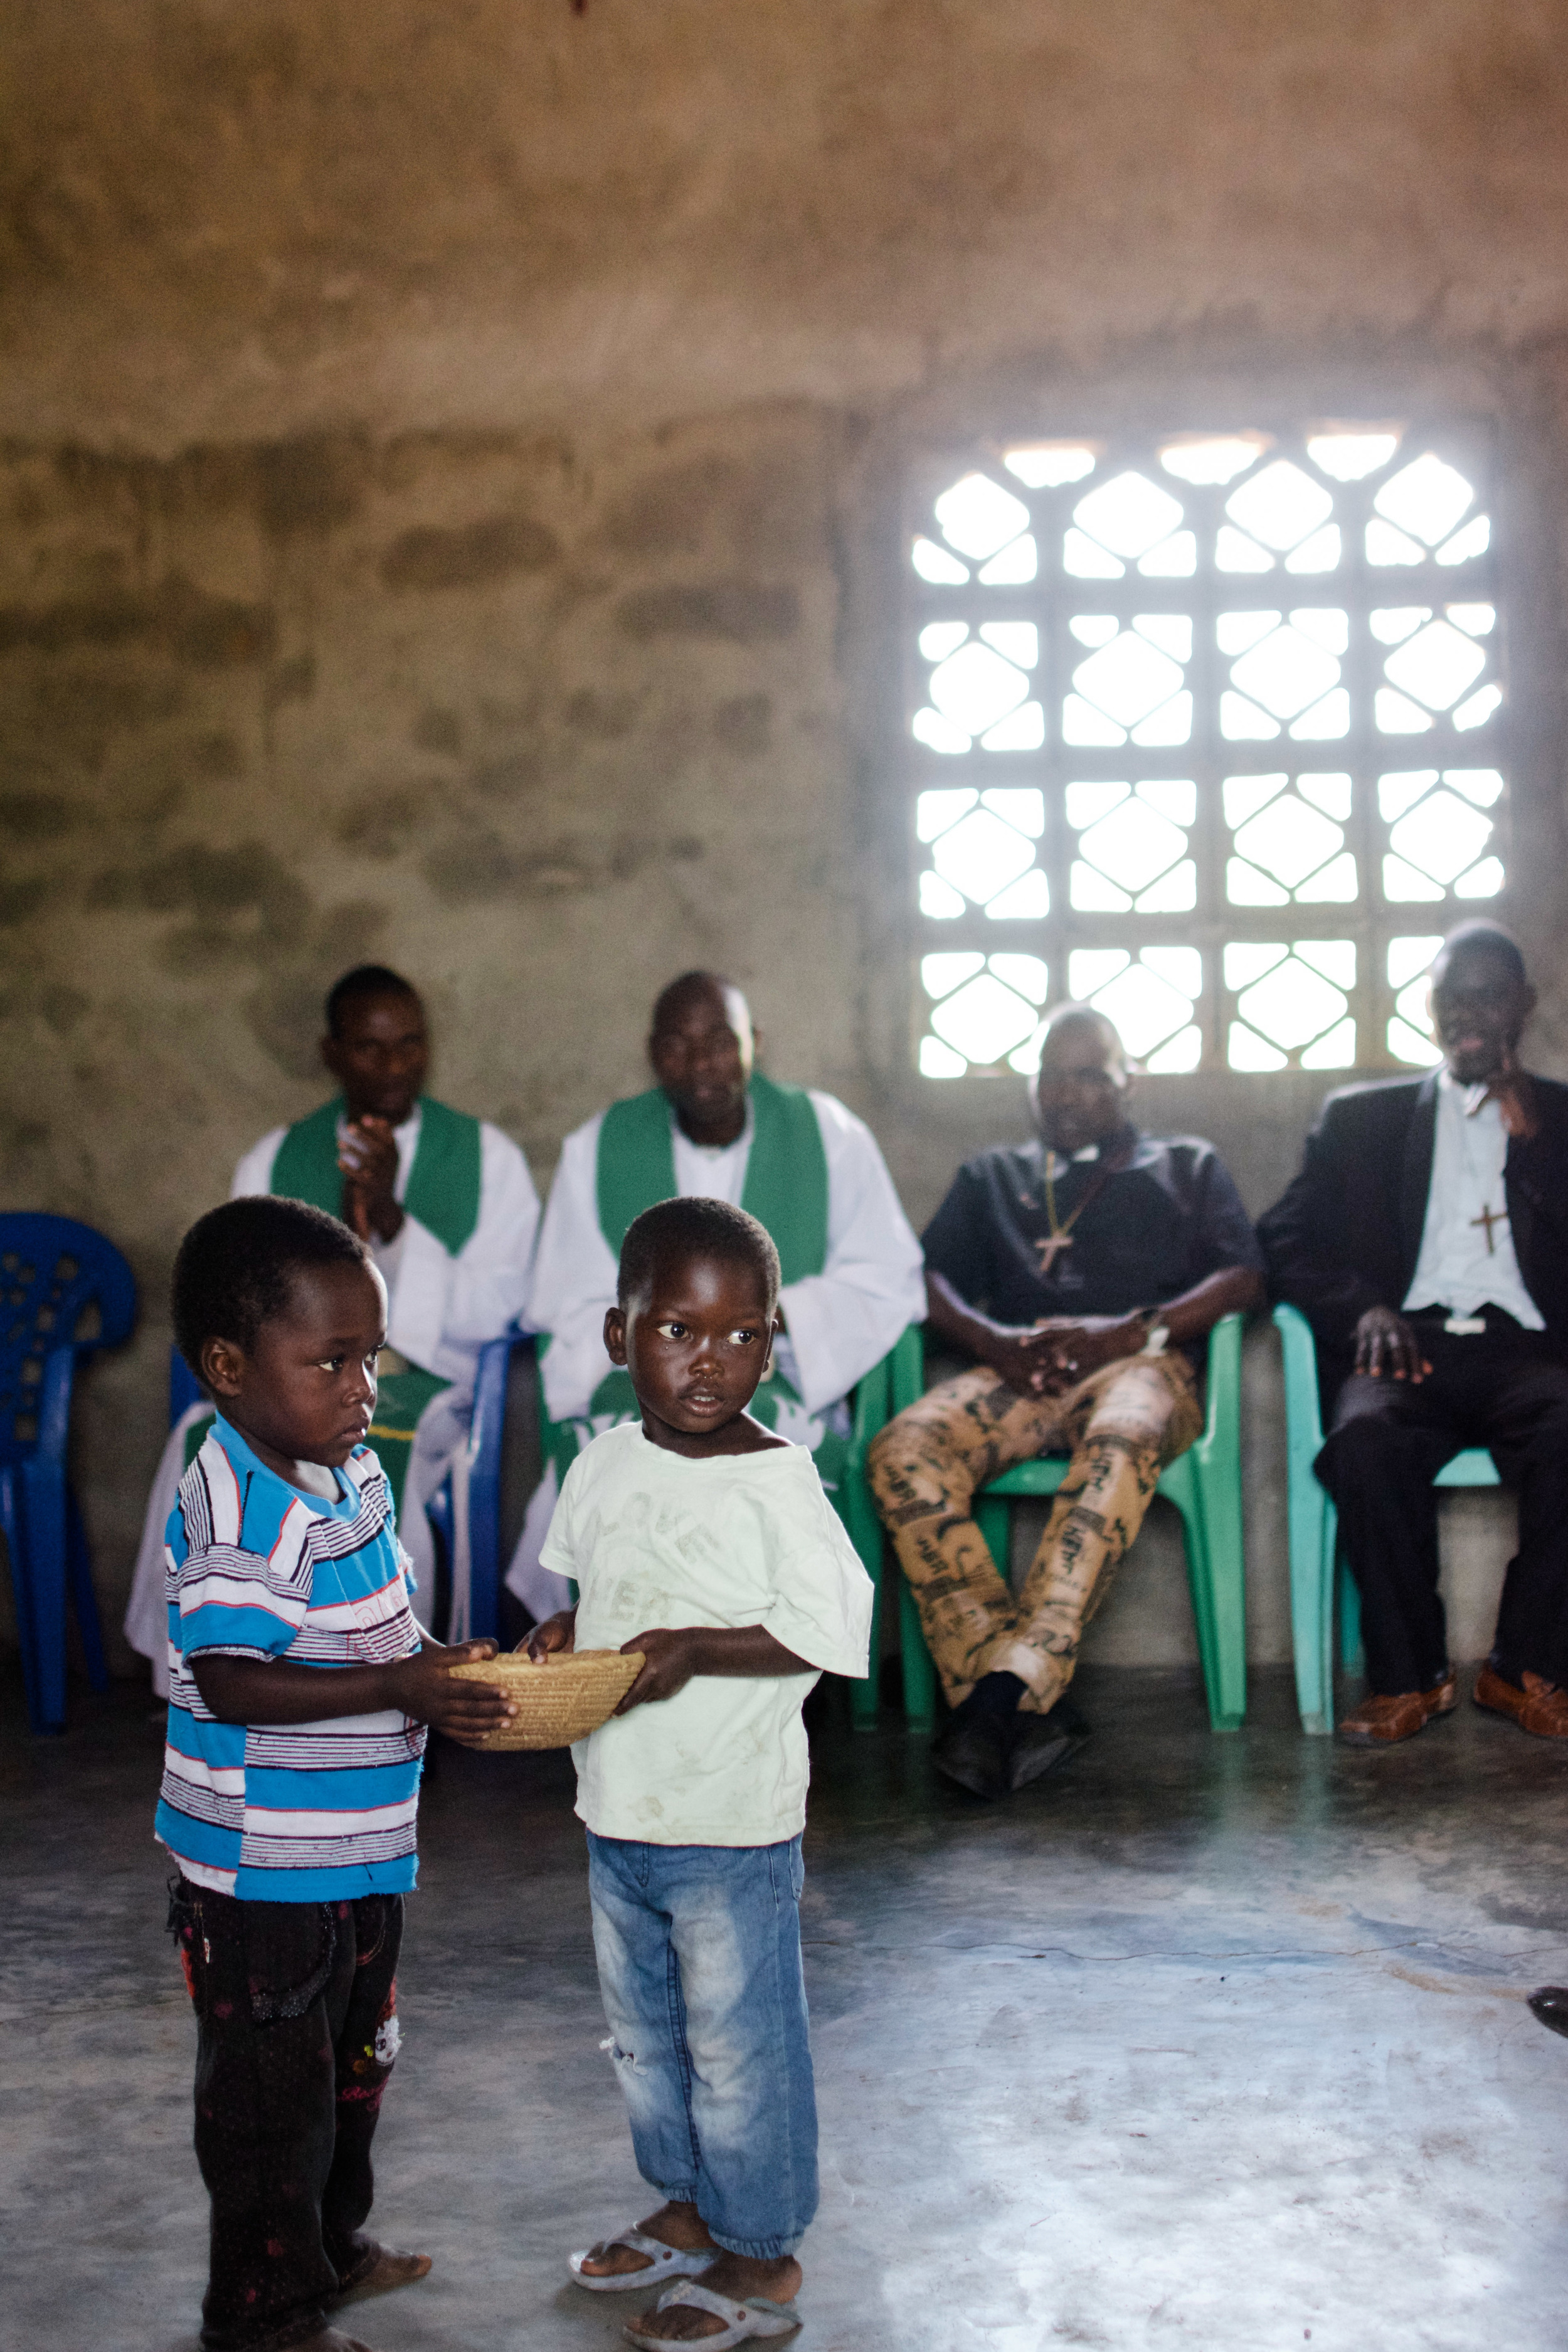 Two young boys collect the offering during a service at São Paulo Lutheran Church in Sena.